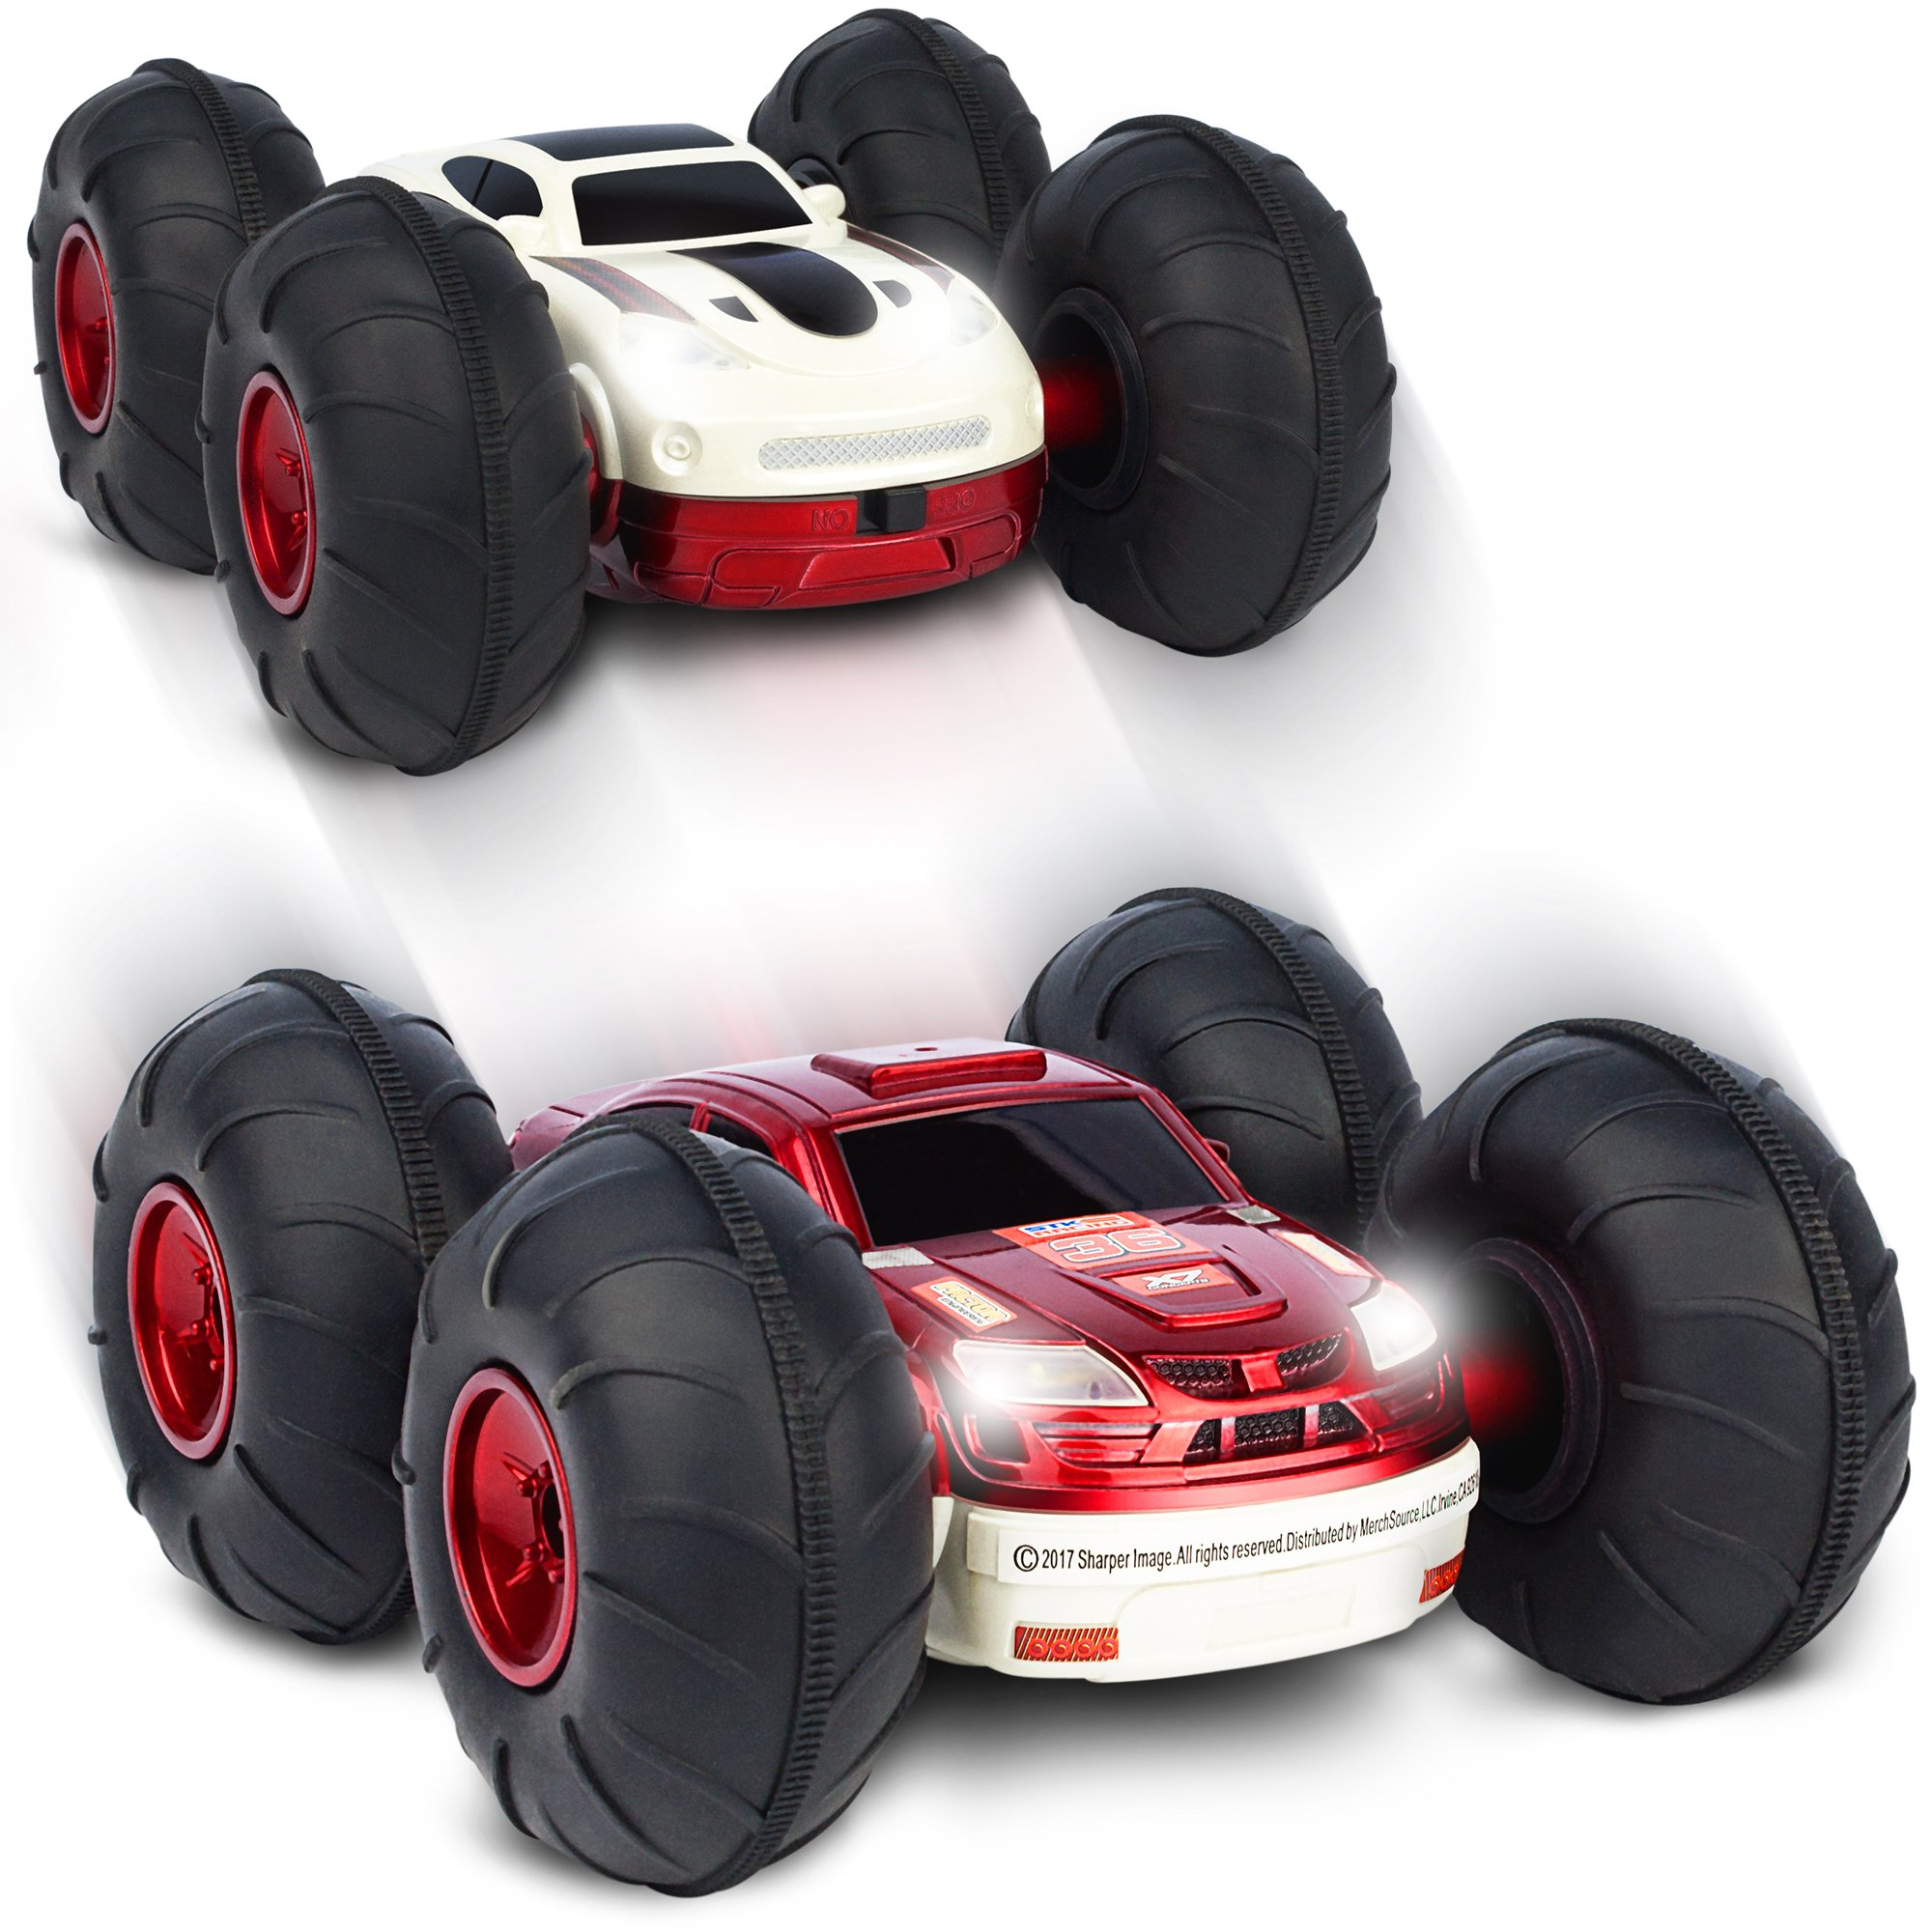 Sharper Image Remote Control RC Cars Flip Stunt Rally Car Toy for Kids, 49 MHz, 2-in-1 Reversible Design for Racing, Cool Stunts, Tricks, LED Headlights, AAA Battery Powered, RED/WHITE Design